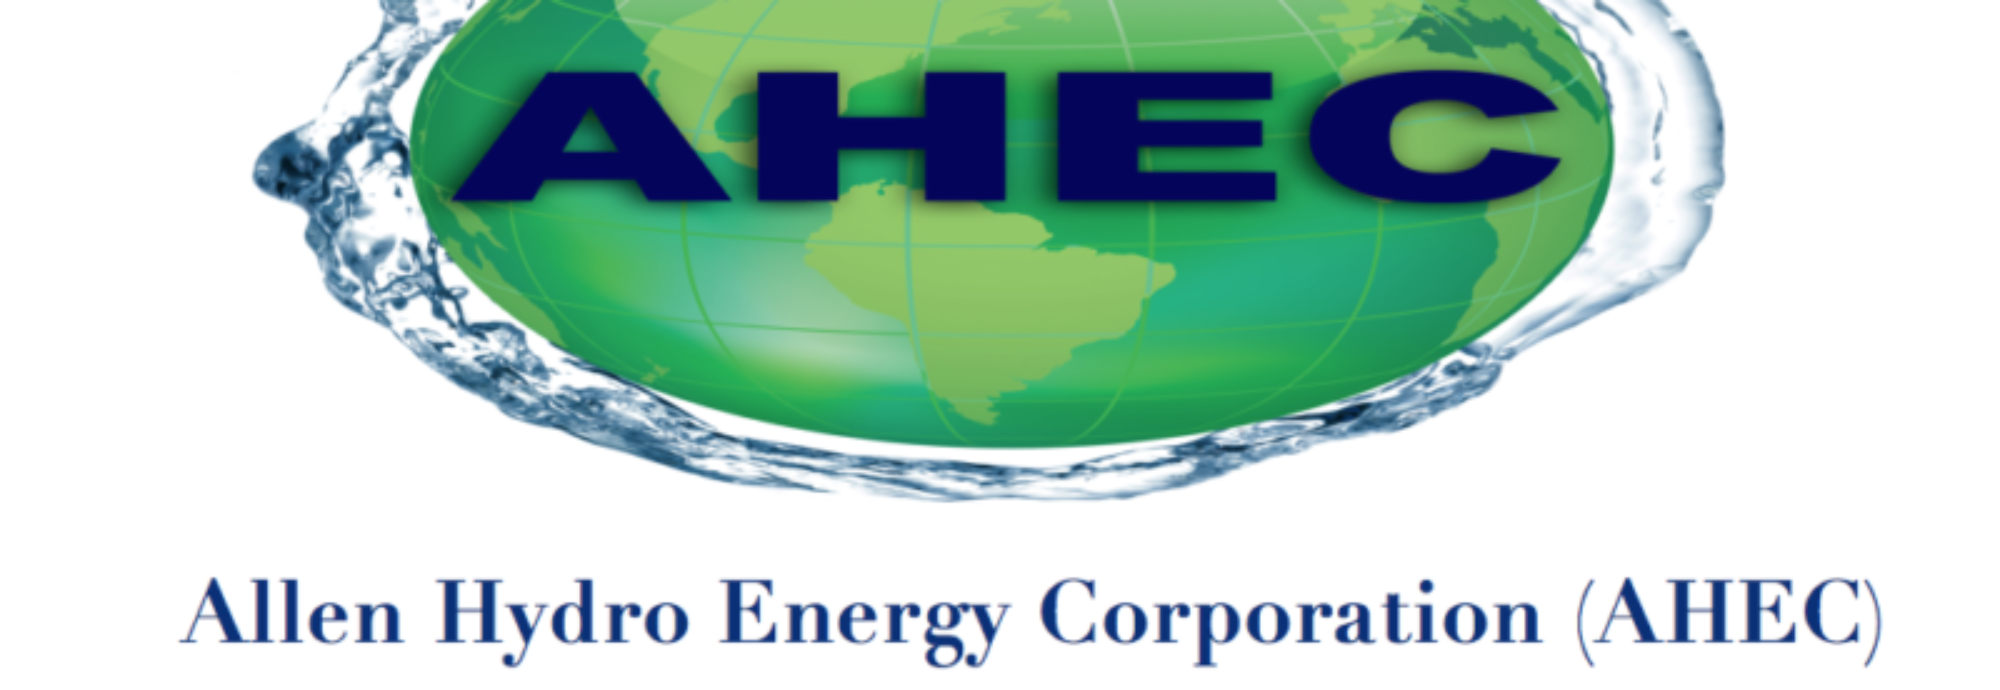 Allen Hydro Energy Corporation (AHEC)